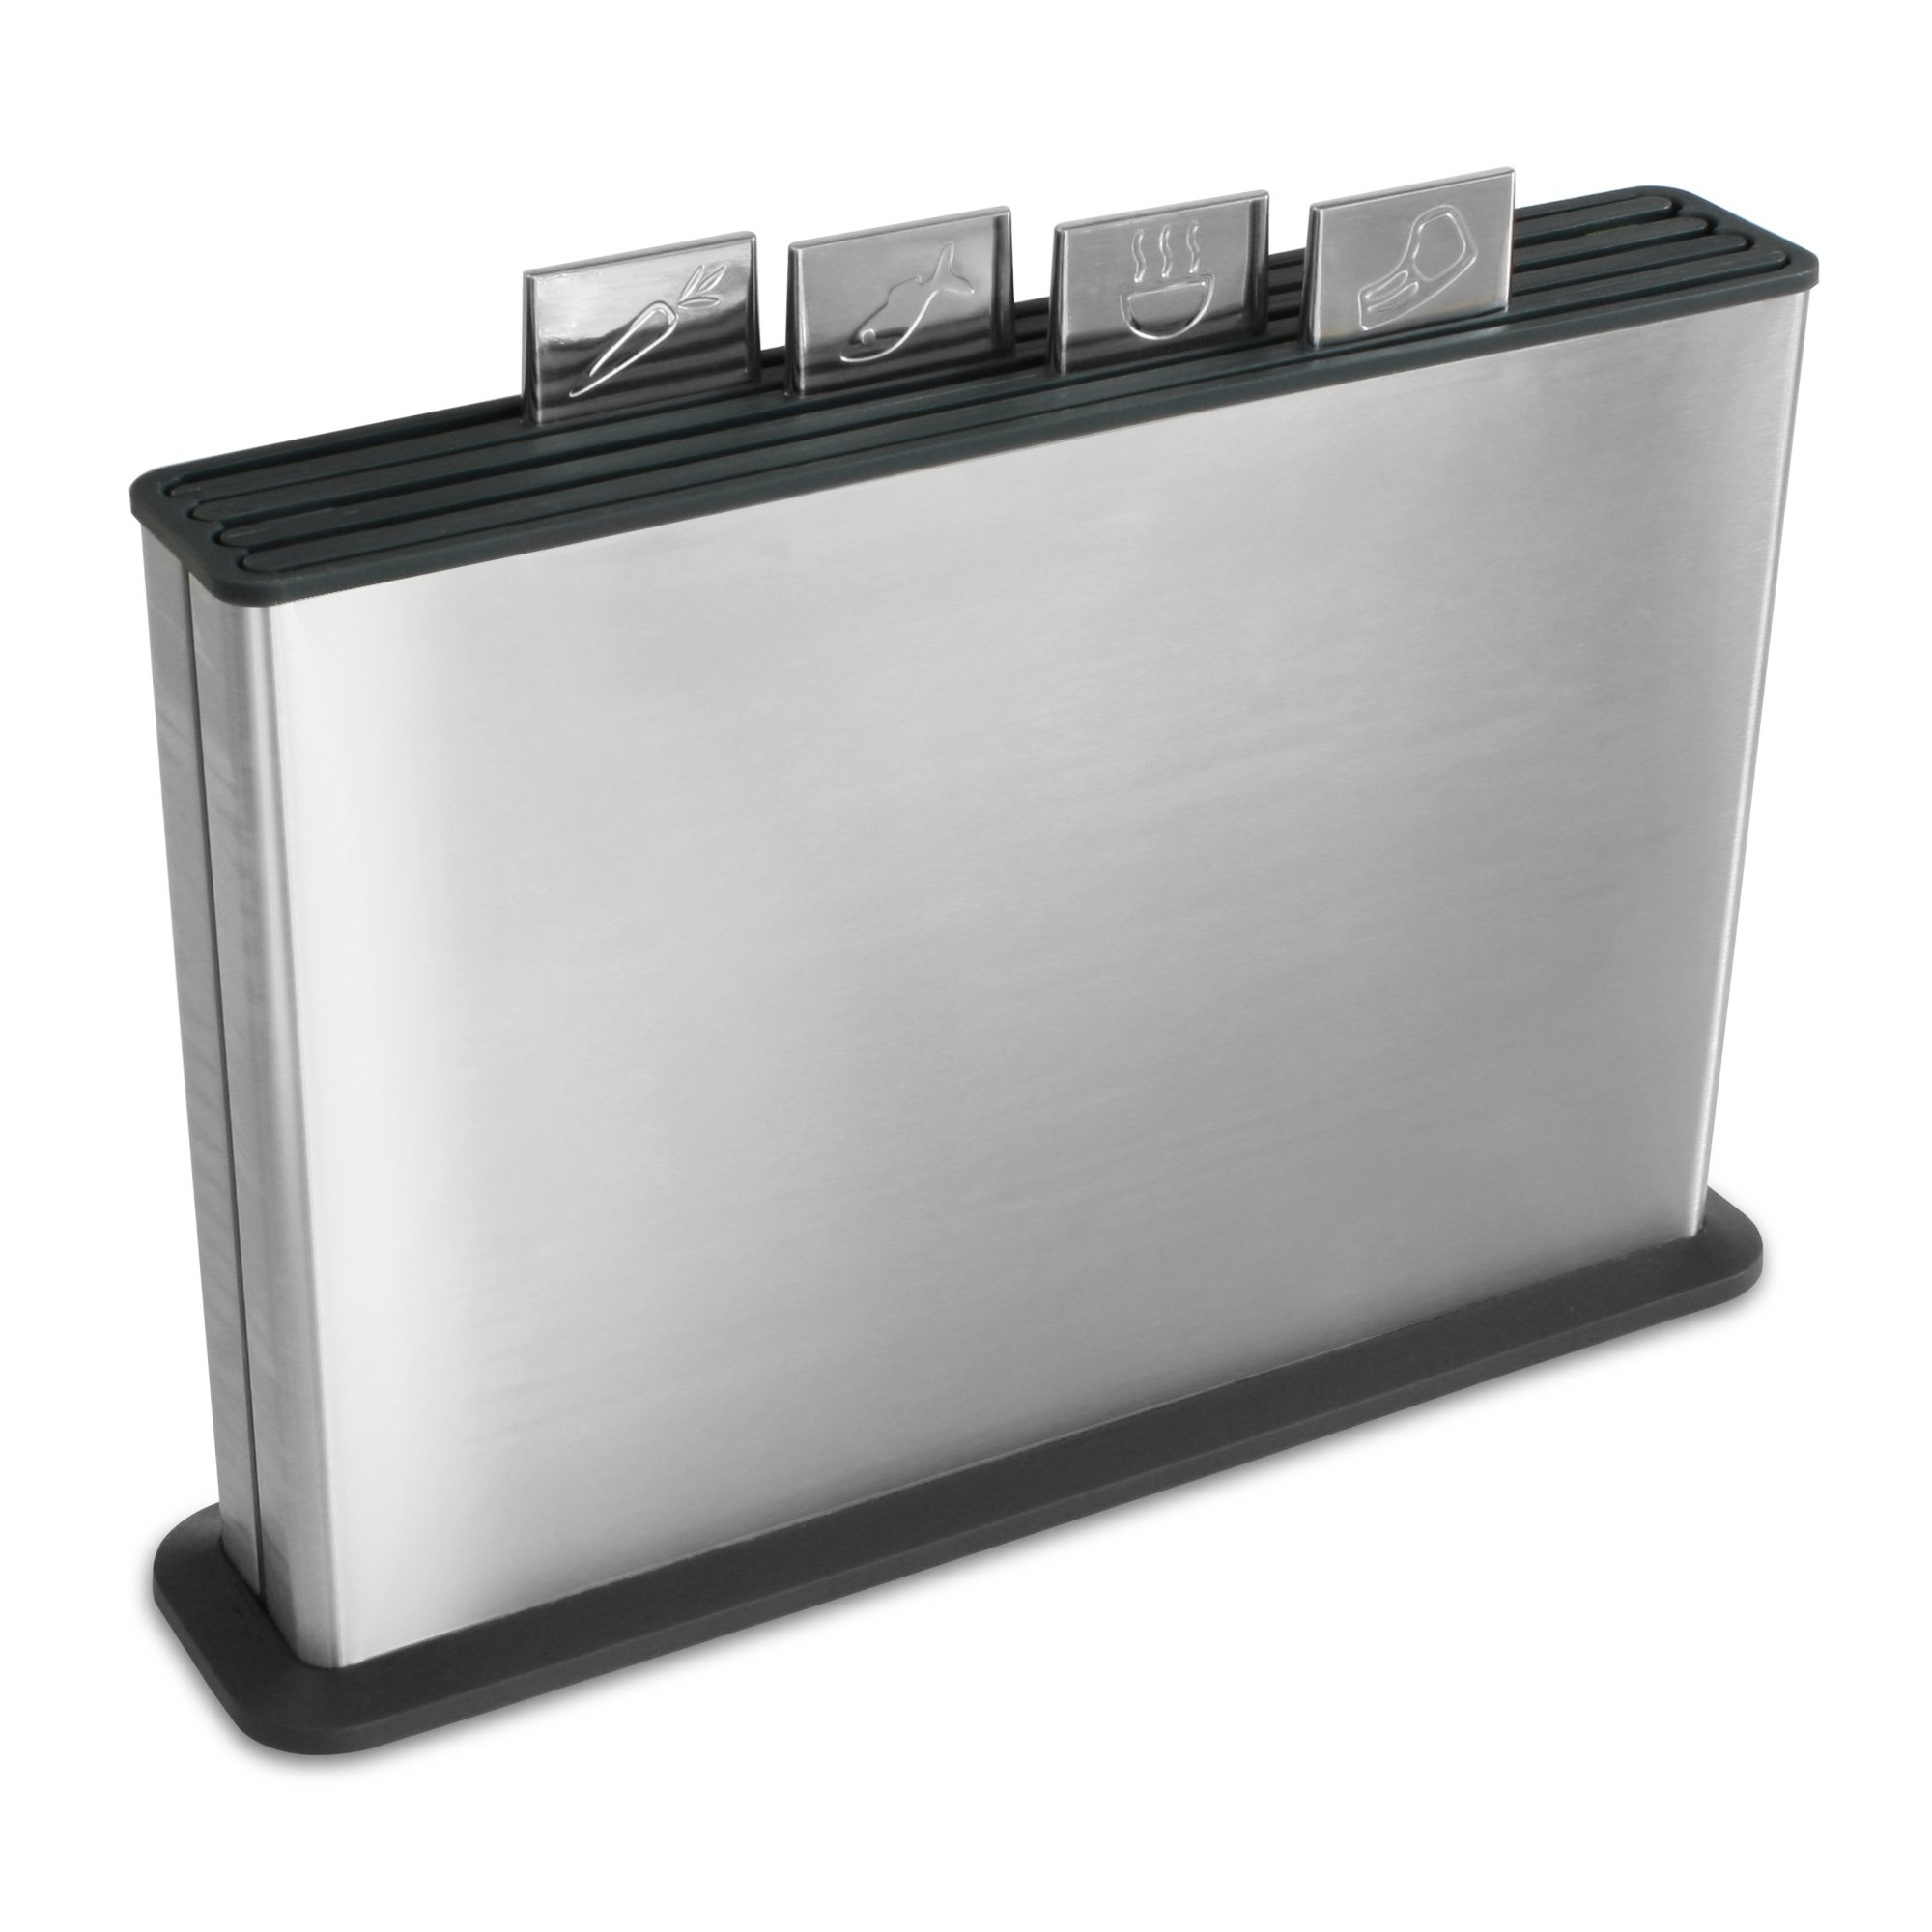 Joseph Joseph 95001 Index Plastic Cutting Board Set with Stainless Steel Storage Case Color-Coded Dishwasher-Safe Non-Slip, Large, Steel Black by Joseph Joseph